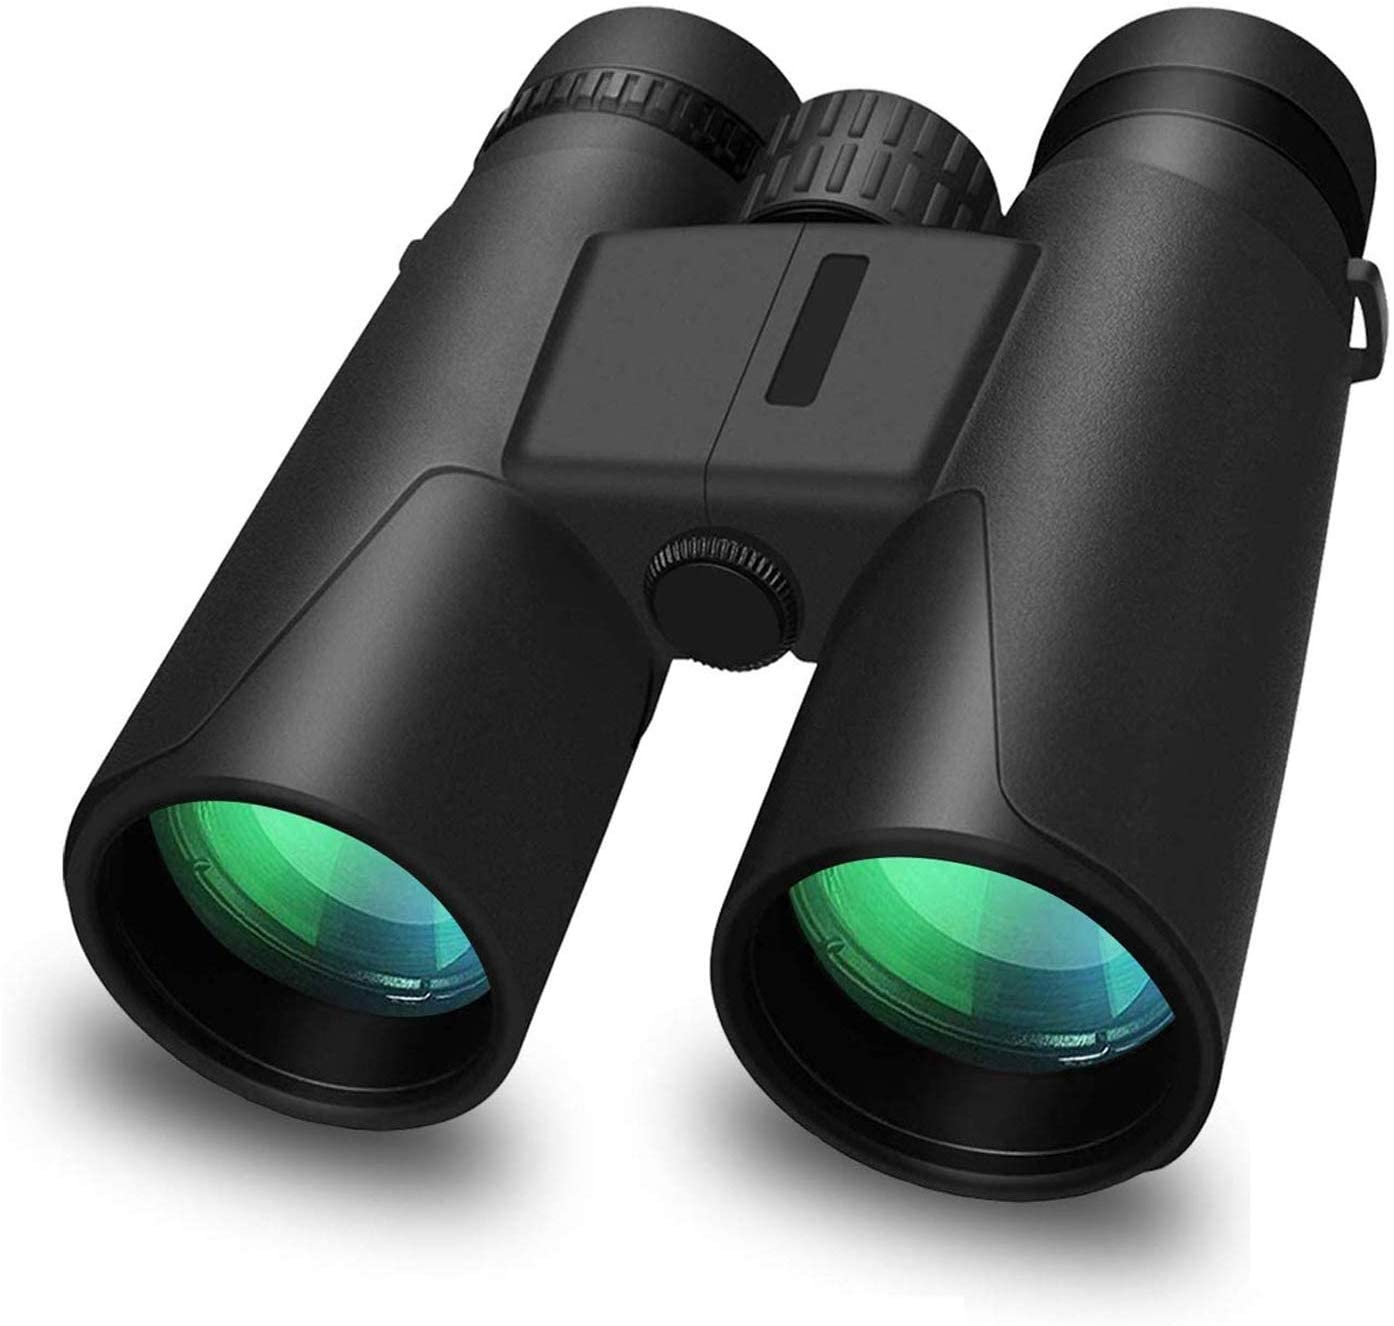 Top 10 Best Compact Binoculars 2020 Reviews 8